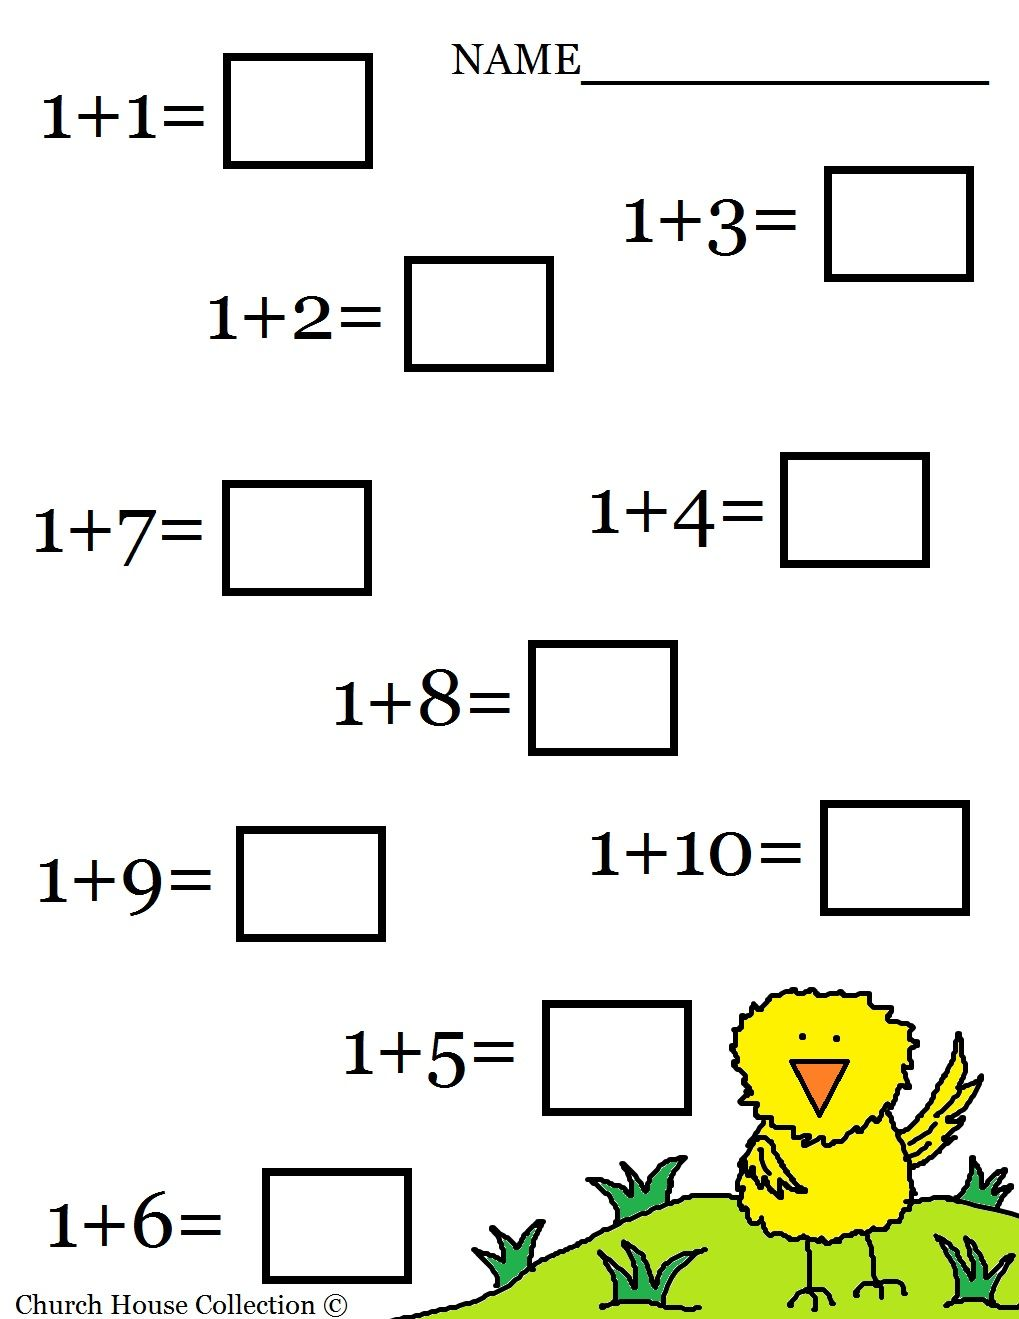 Aldiablosus  Personable  Images About Worksheets  Math On Pinterest  Math Sheets  With Gorgeous  Images About Worksheets  Math On Pinterest  Math Sheets Math Worksheets For Kindergarten And Simple Addition With Divine States And Capitals Worksheets For Th Grade Also Free Printable Worksheets For Th Grade In Addition Kindergarten Writing Worksheets Free And Sink And Float Worksheet As Well As Verb Tense Worksheets Middle School Additionally Winter Preschool Worksheets From Pinterestcom With Aldiablosus  Gorgeous  Images About Worksheets  Math On Pinterest  Math Sheets  With Divine  Images About Worksheets  Math On Pinterest  Math Sheets Math Worksheets For Kindergarten And Simple Addition And Personable States And Capitals Worksheets For Th Grade Also Free Printable Worksheets For Th Grade In Addition Kindergarten Writing Worksheets Free From Pinterestcom